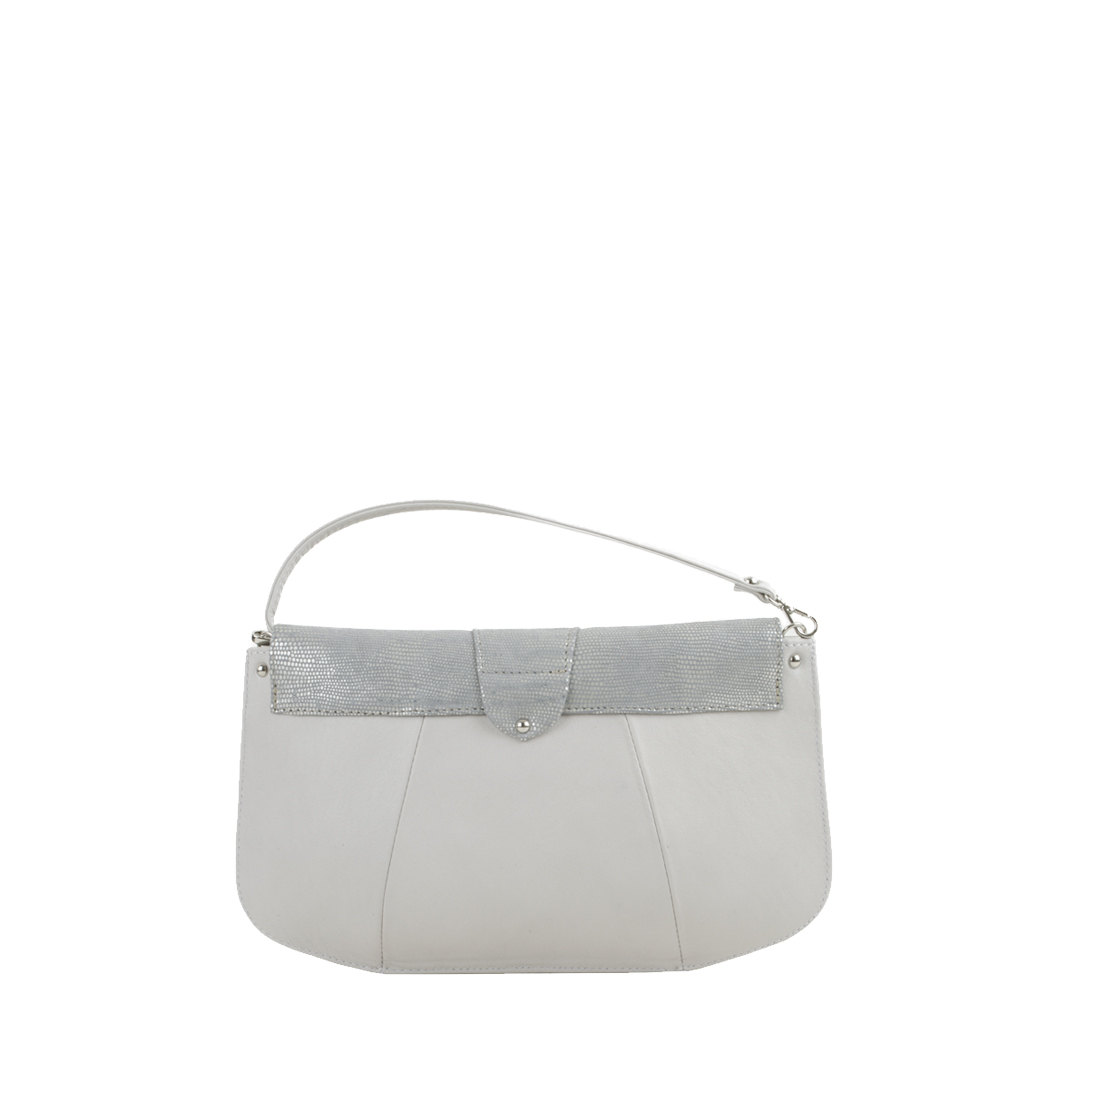 Ruby Silver Eel Print Leather Shoulder Bag